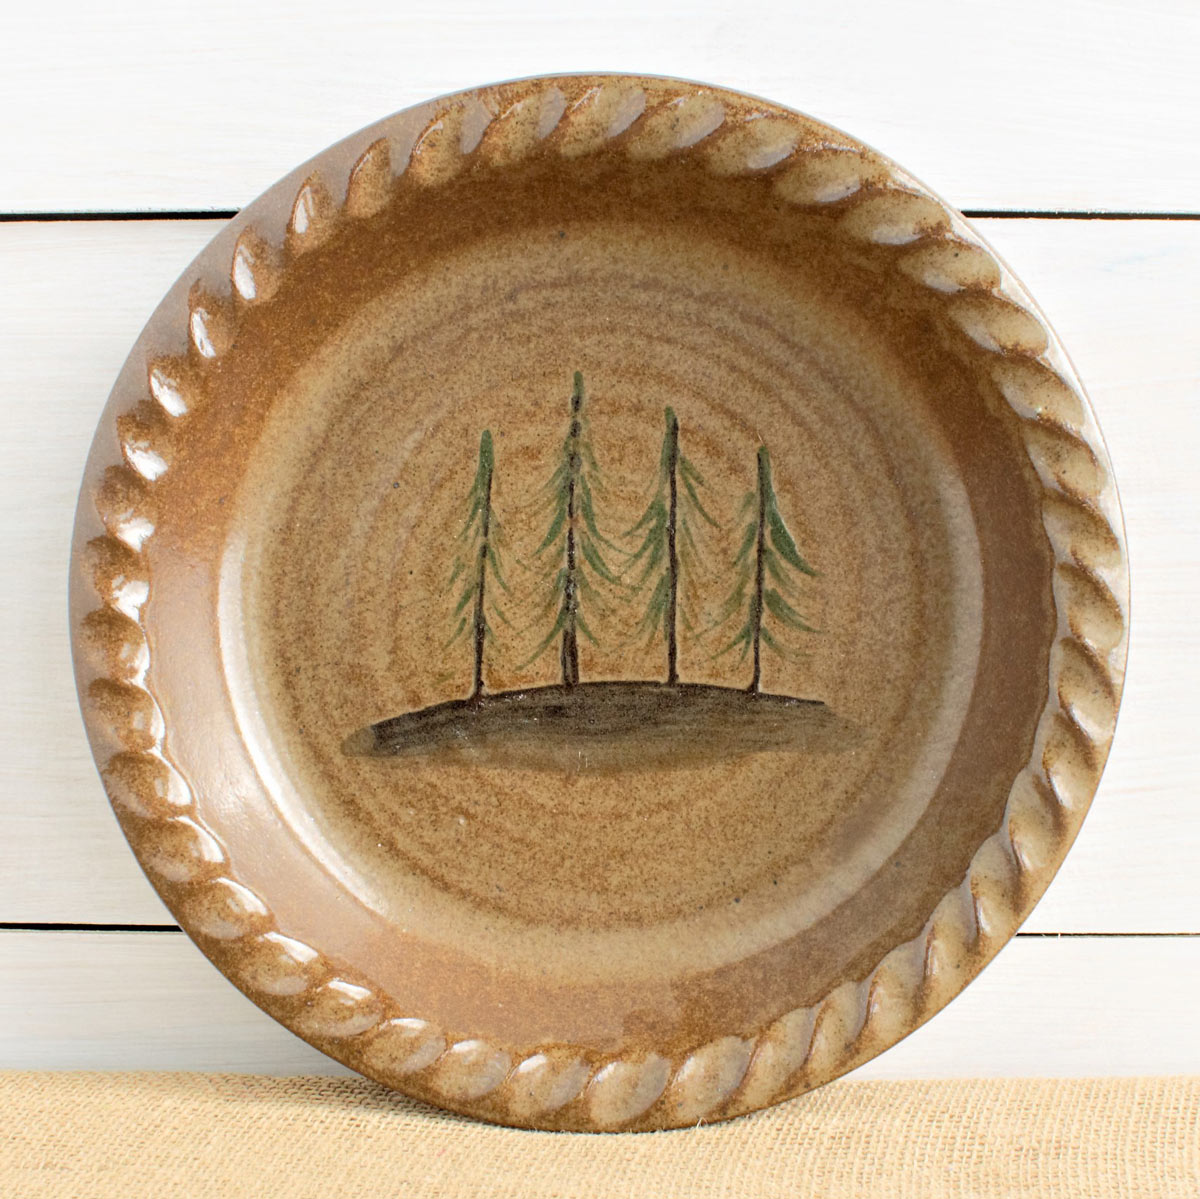 Black Forest Decor Northwoods pine trees pie plate & Artisanal dinnerware | Compare Prices at Nextag